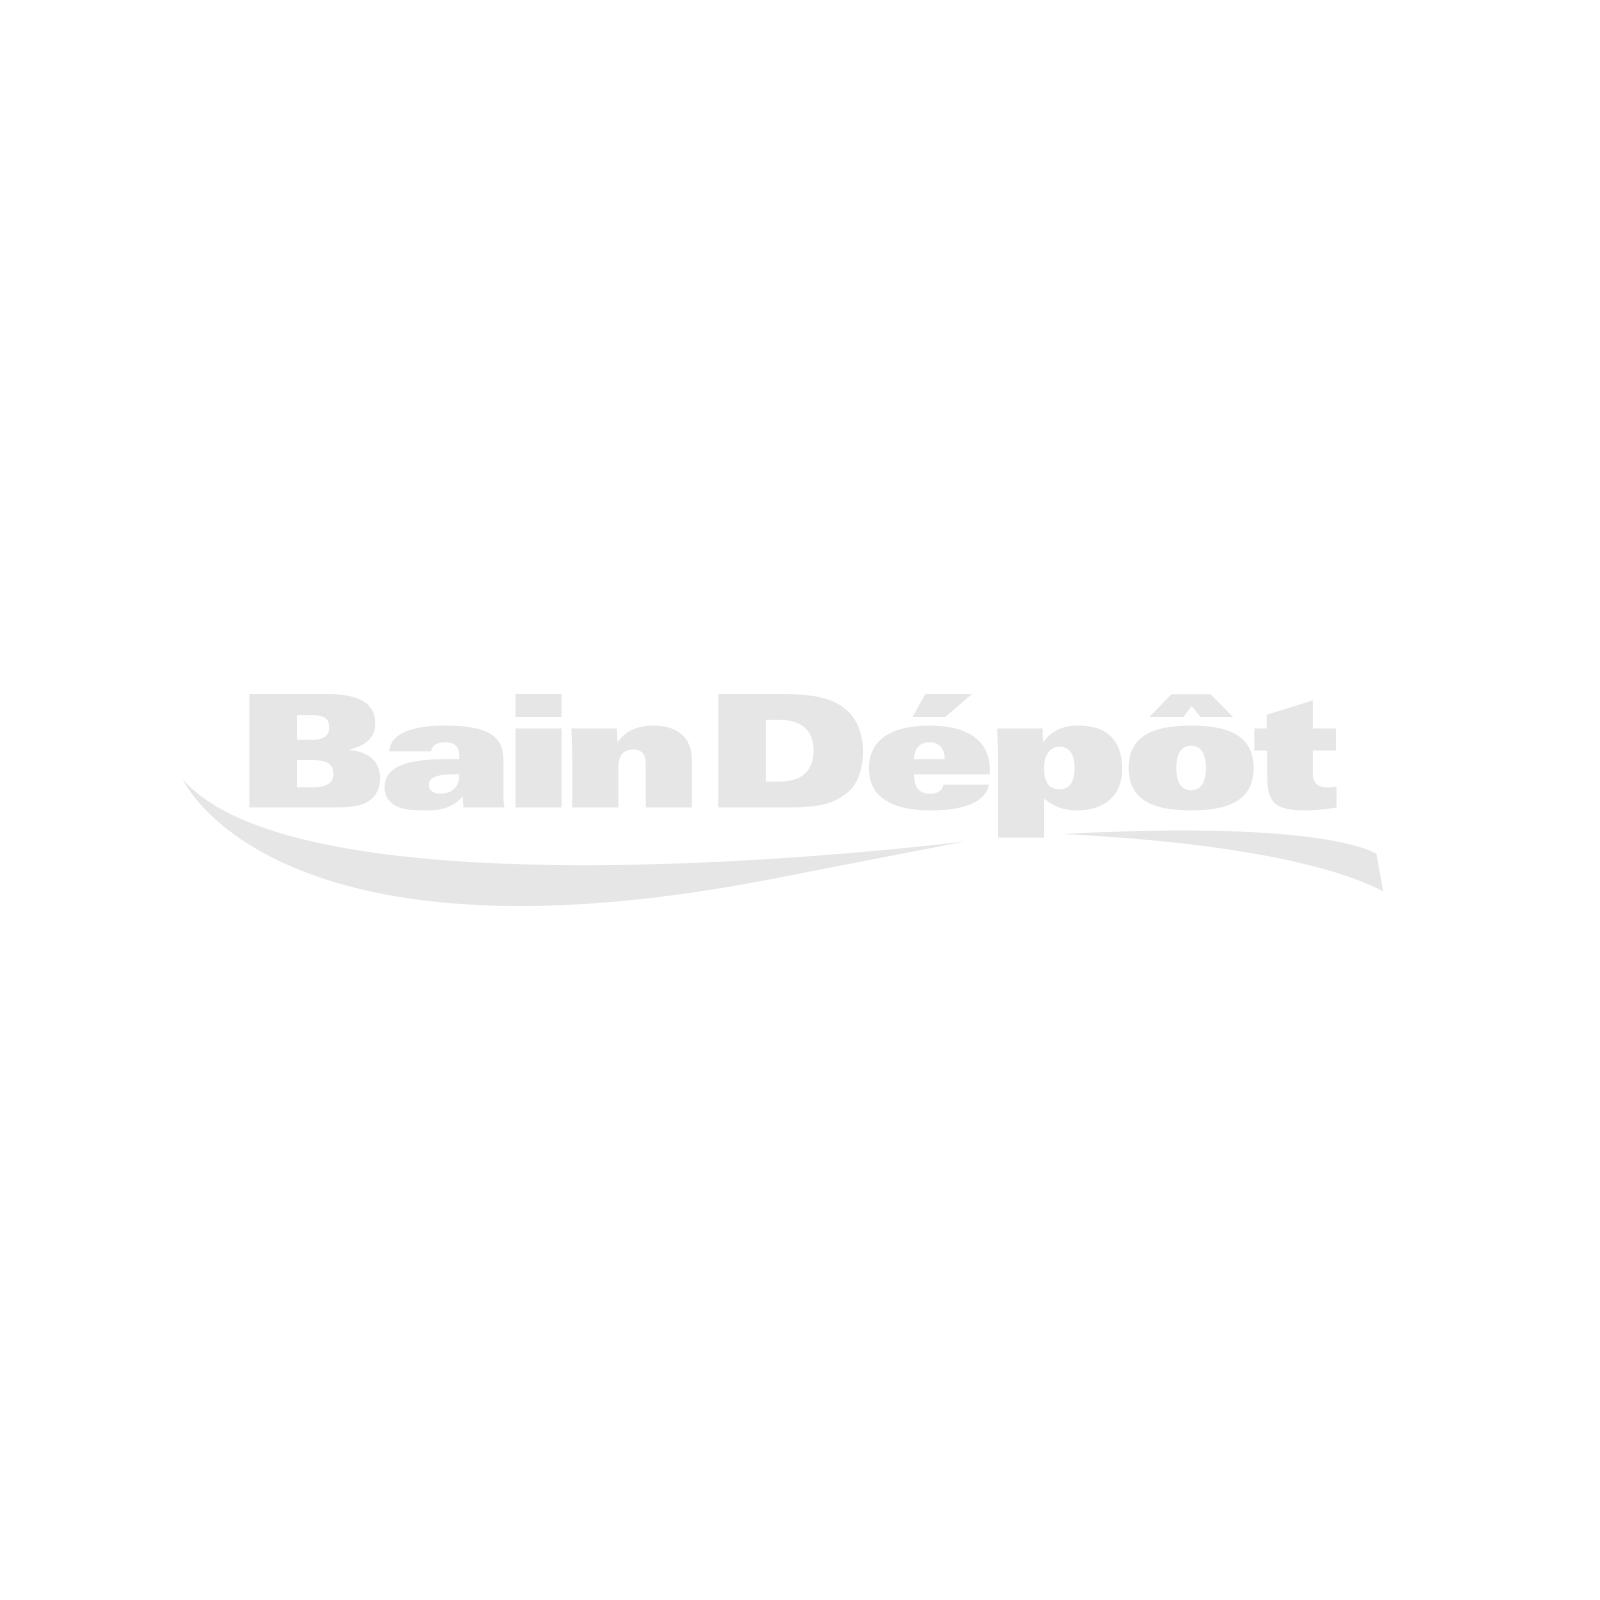 "36"" x 36"" Belly shower kit with door, base and wall panels with 6 shelves"